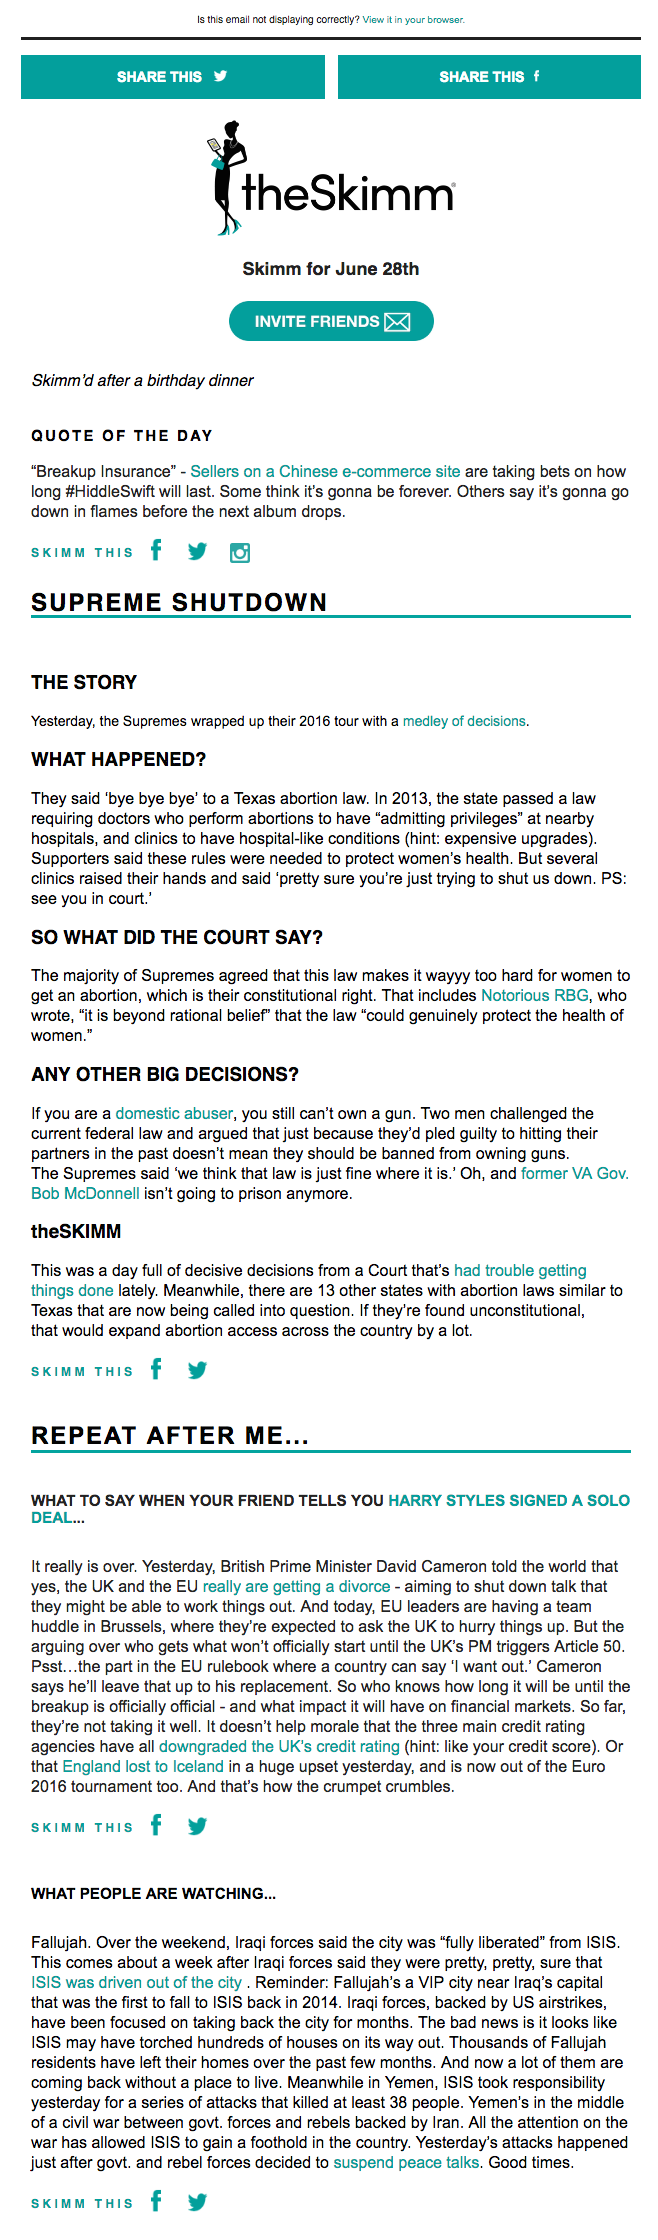 Email newsletter example design with news by theSkimm